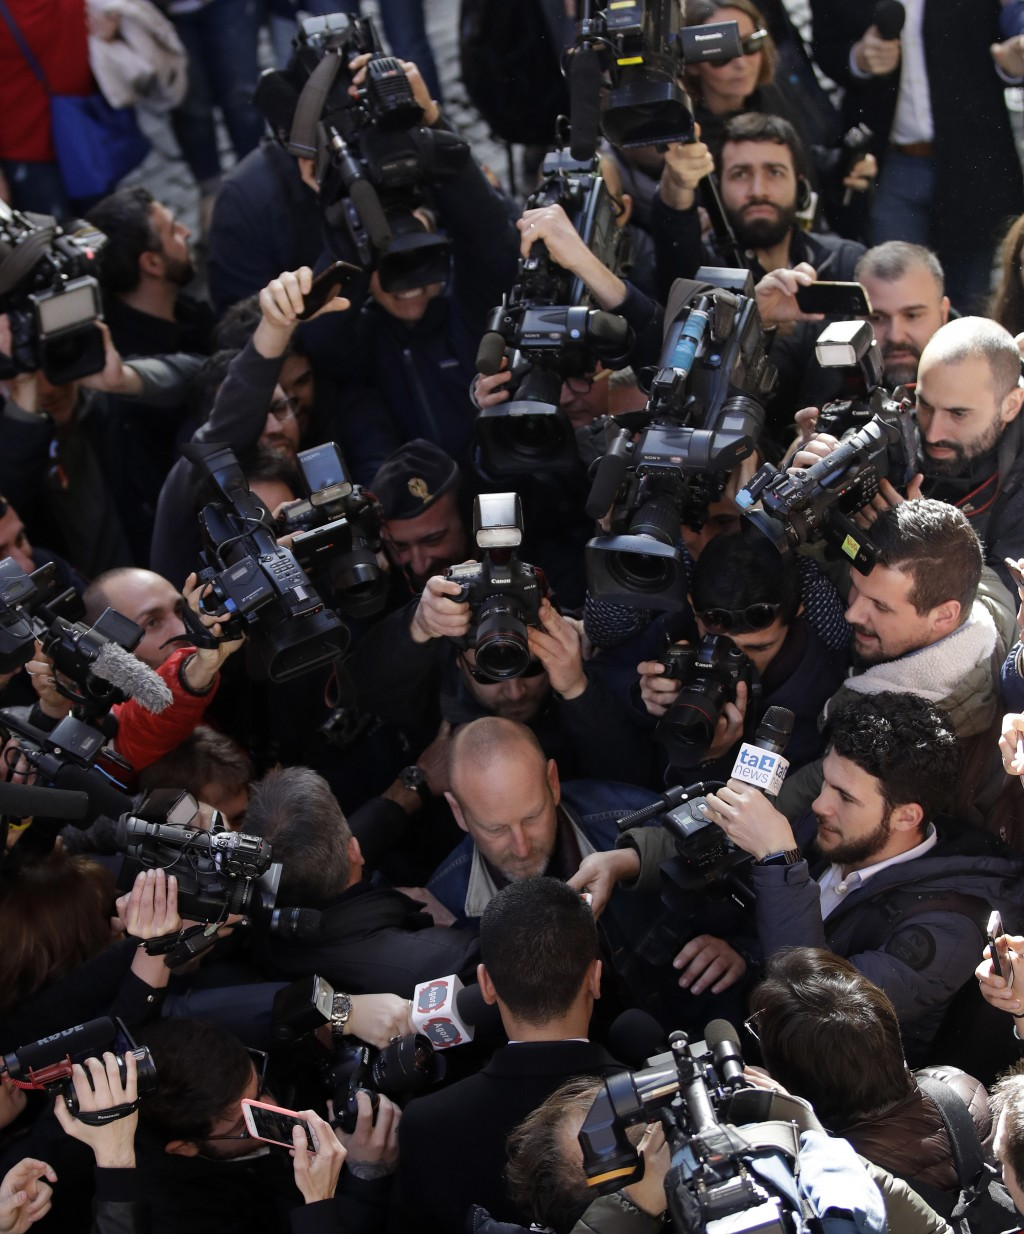 Five-Star Movement leader Luigi Di Maio, center, back to camera, arrives at the foreign press association in Rome, Tuesday, March 13, 2018. (AP Photo/